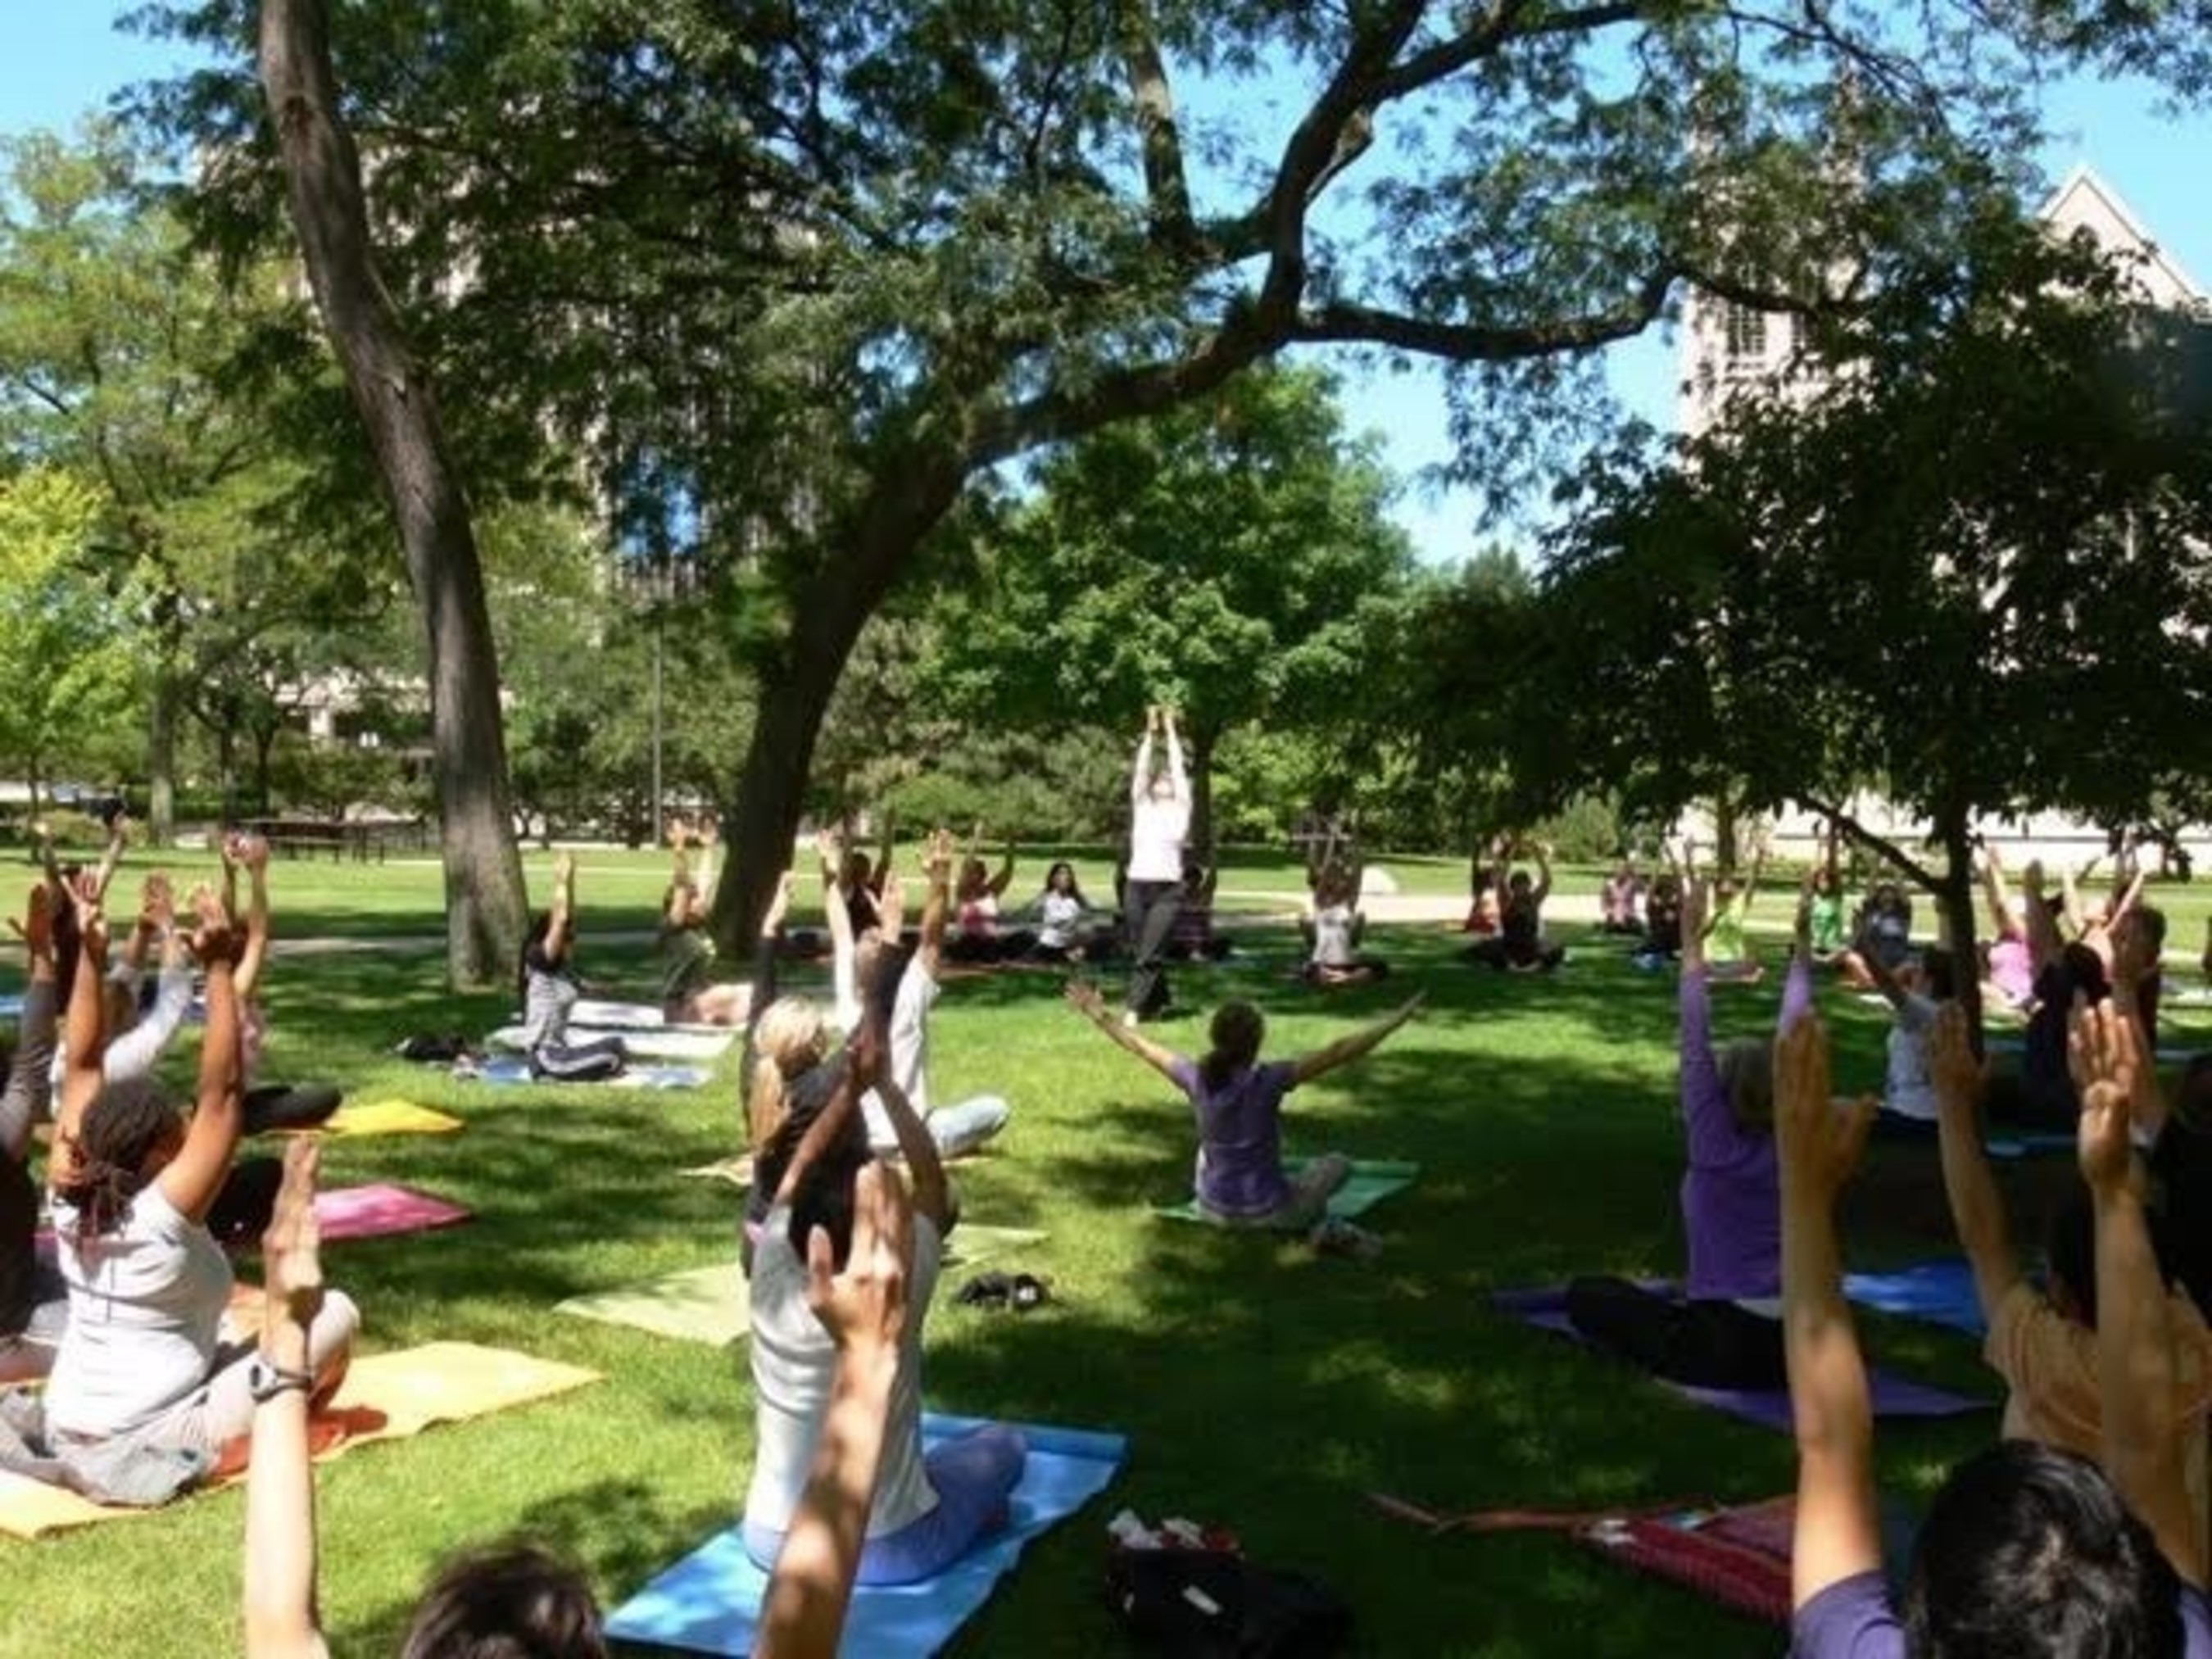 Pink Lotus Yoga Village at Cleveland World Festival to host free yoga classes on Sunday, August 2, starting at 1 p.m.